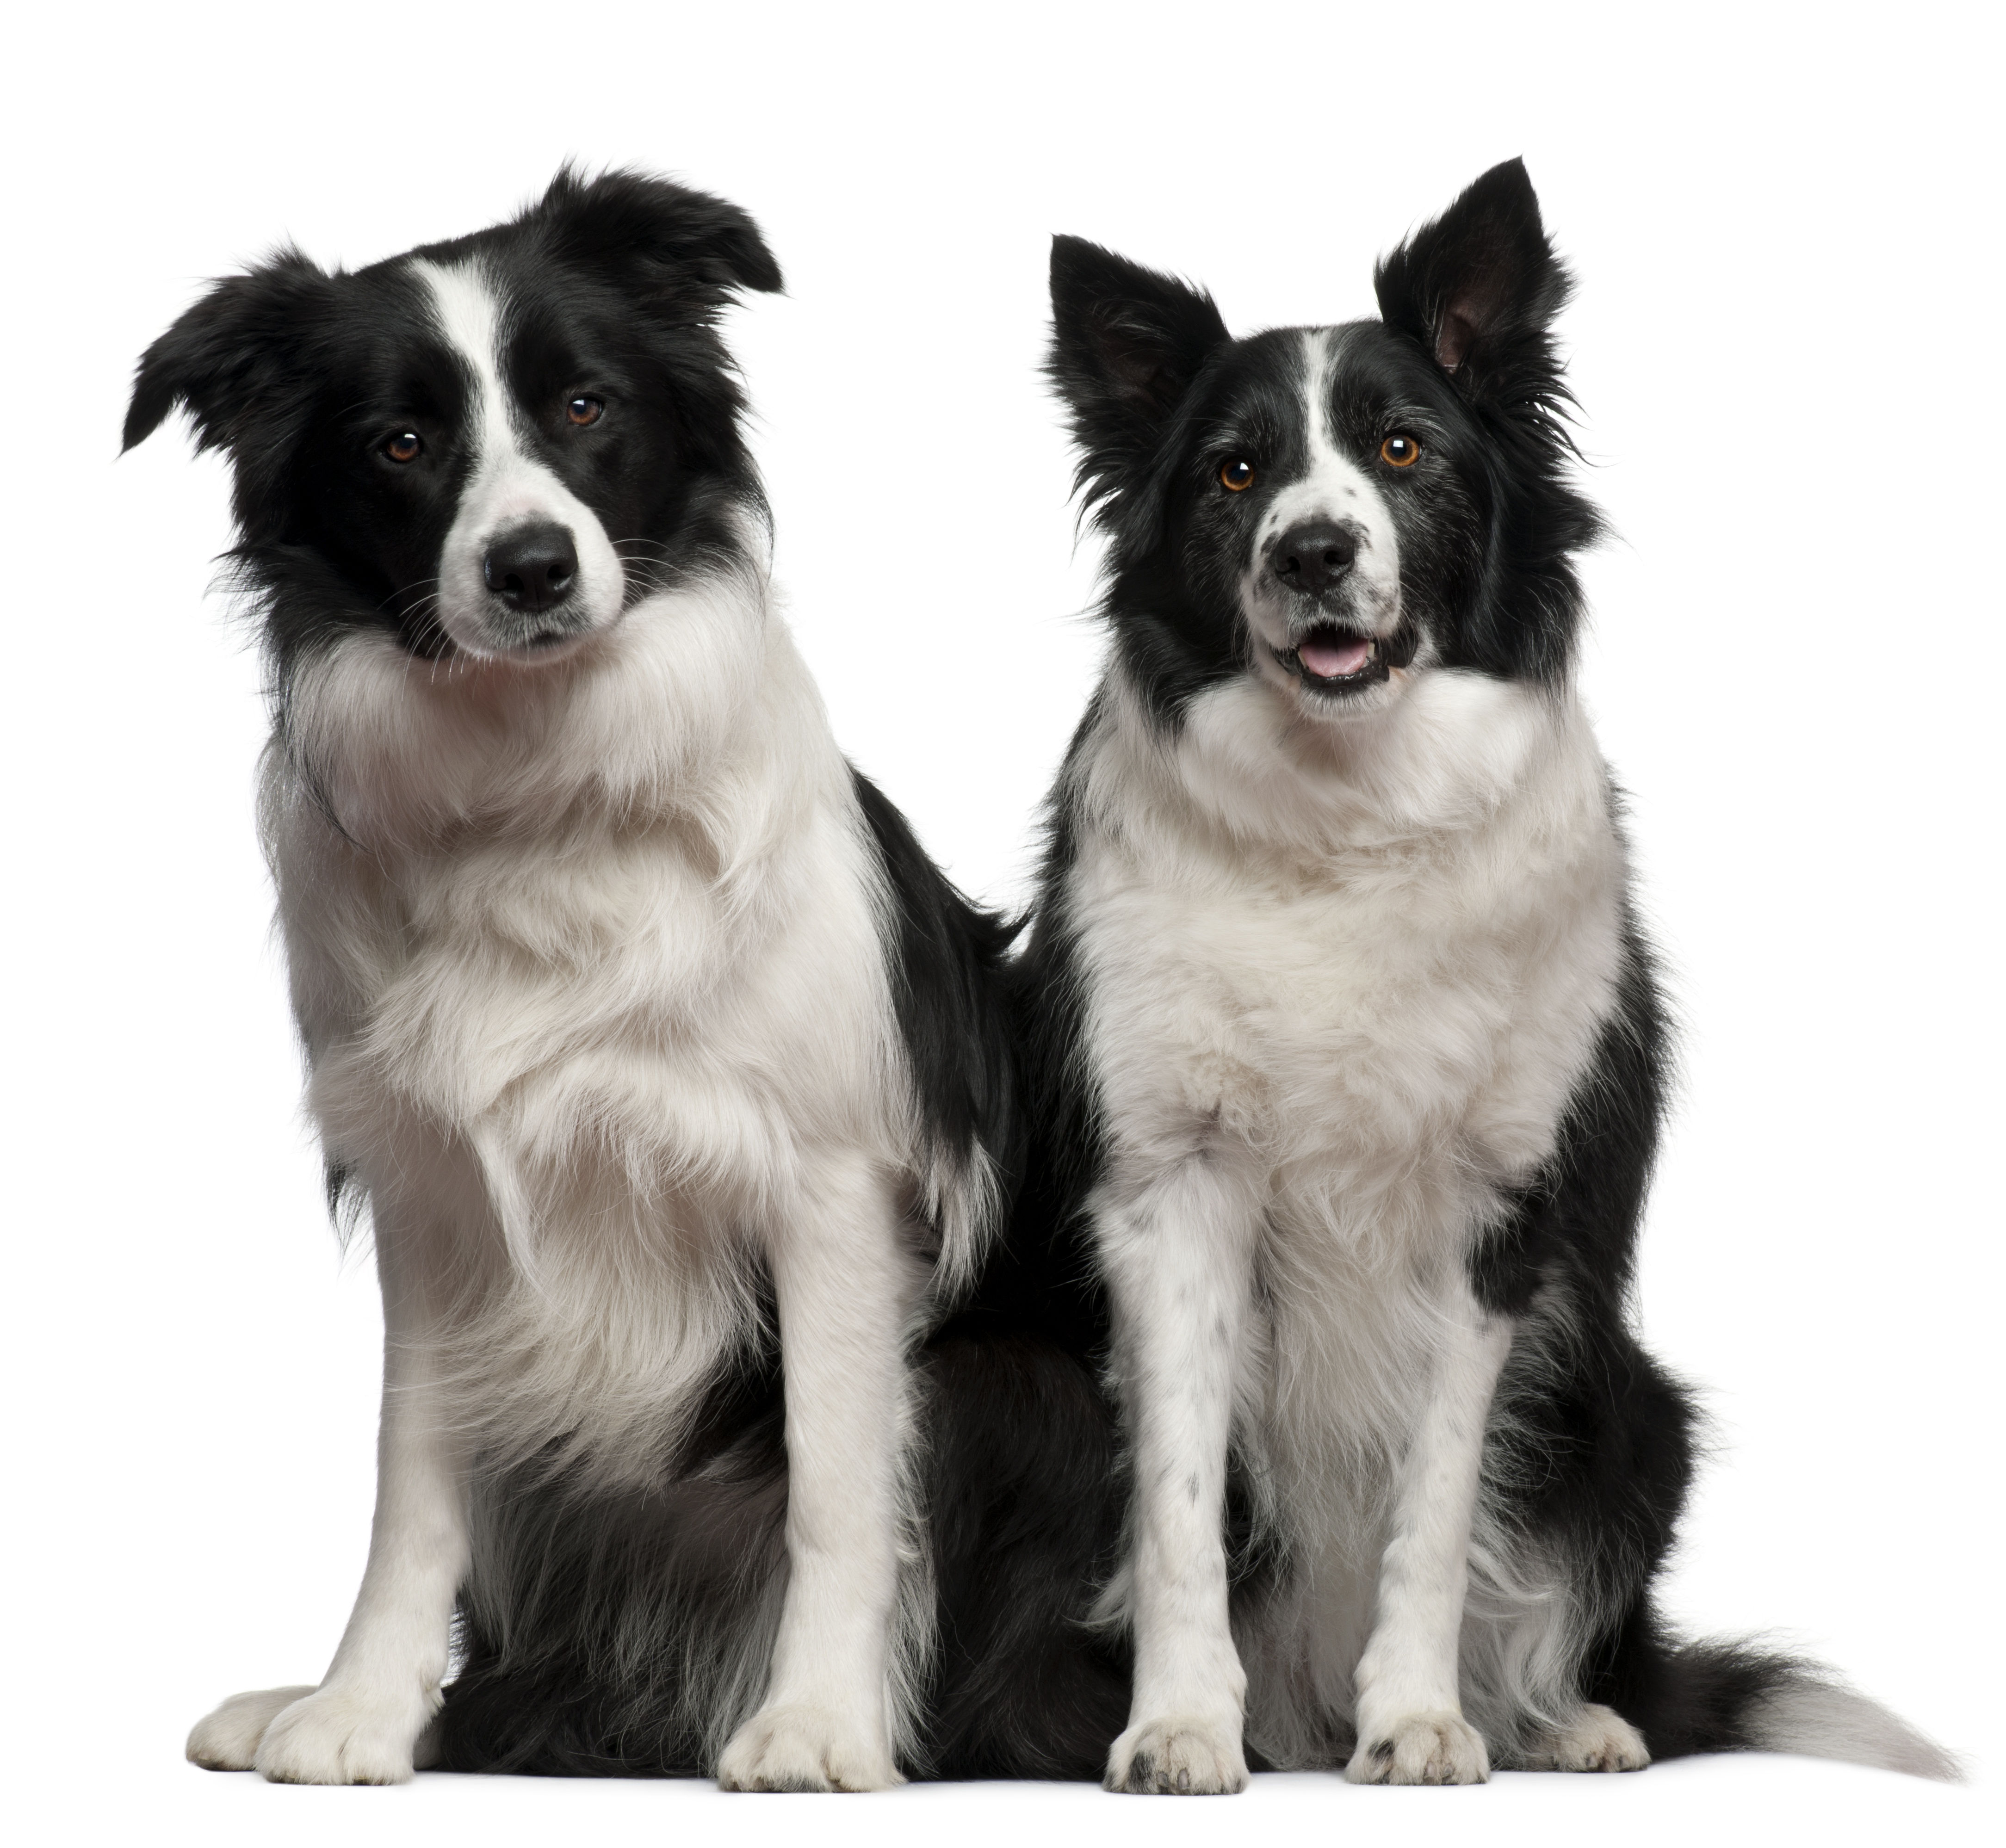 Two Border Collies sitting in front of white background